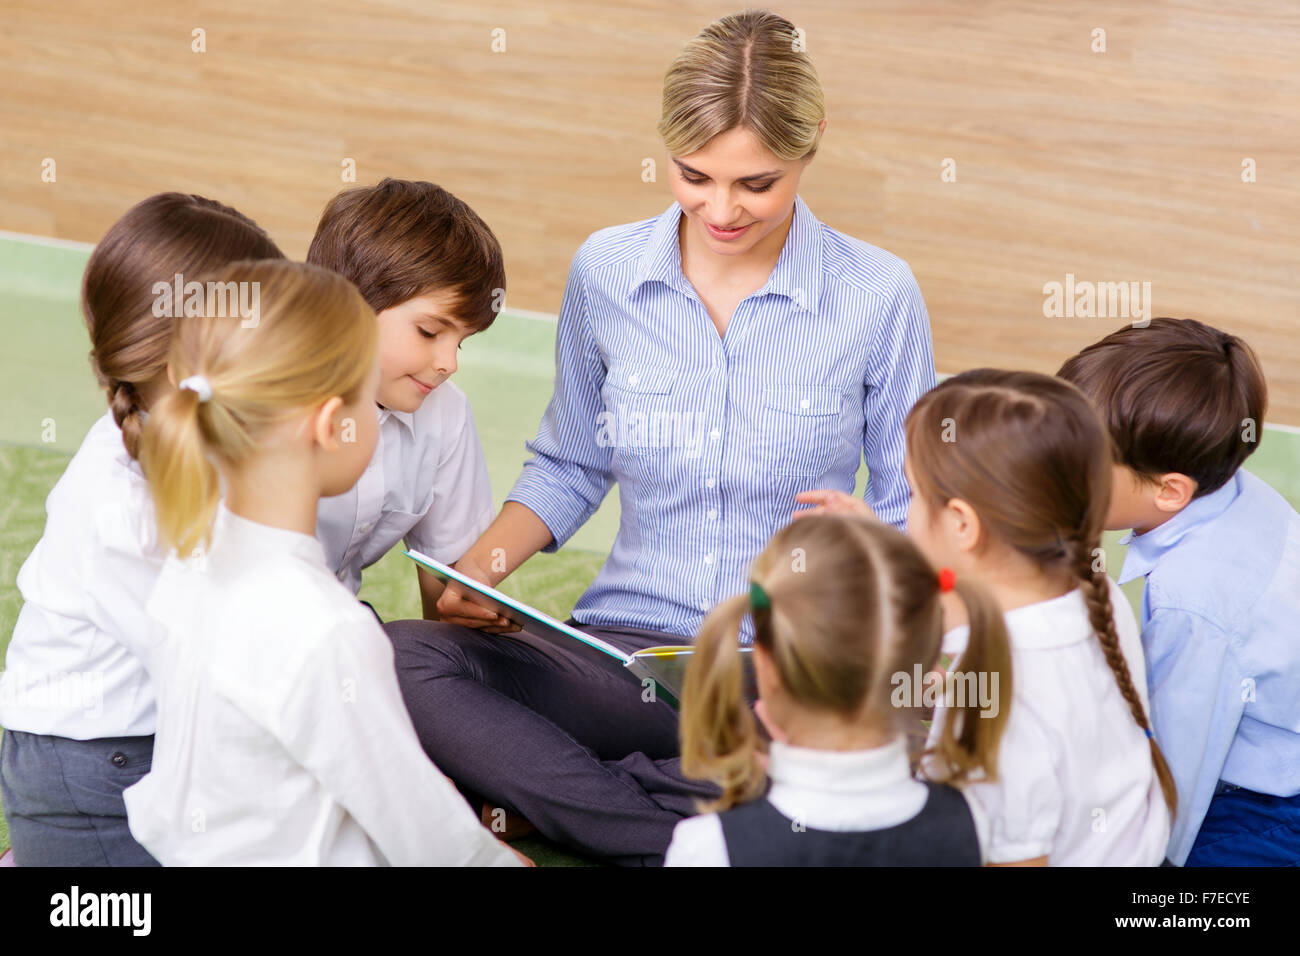 Kids and their teacher at reading session. - Stock Image